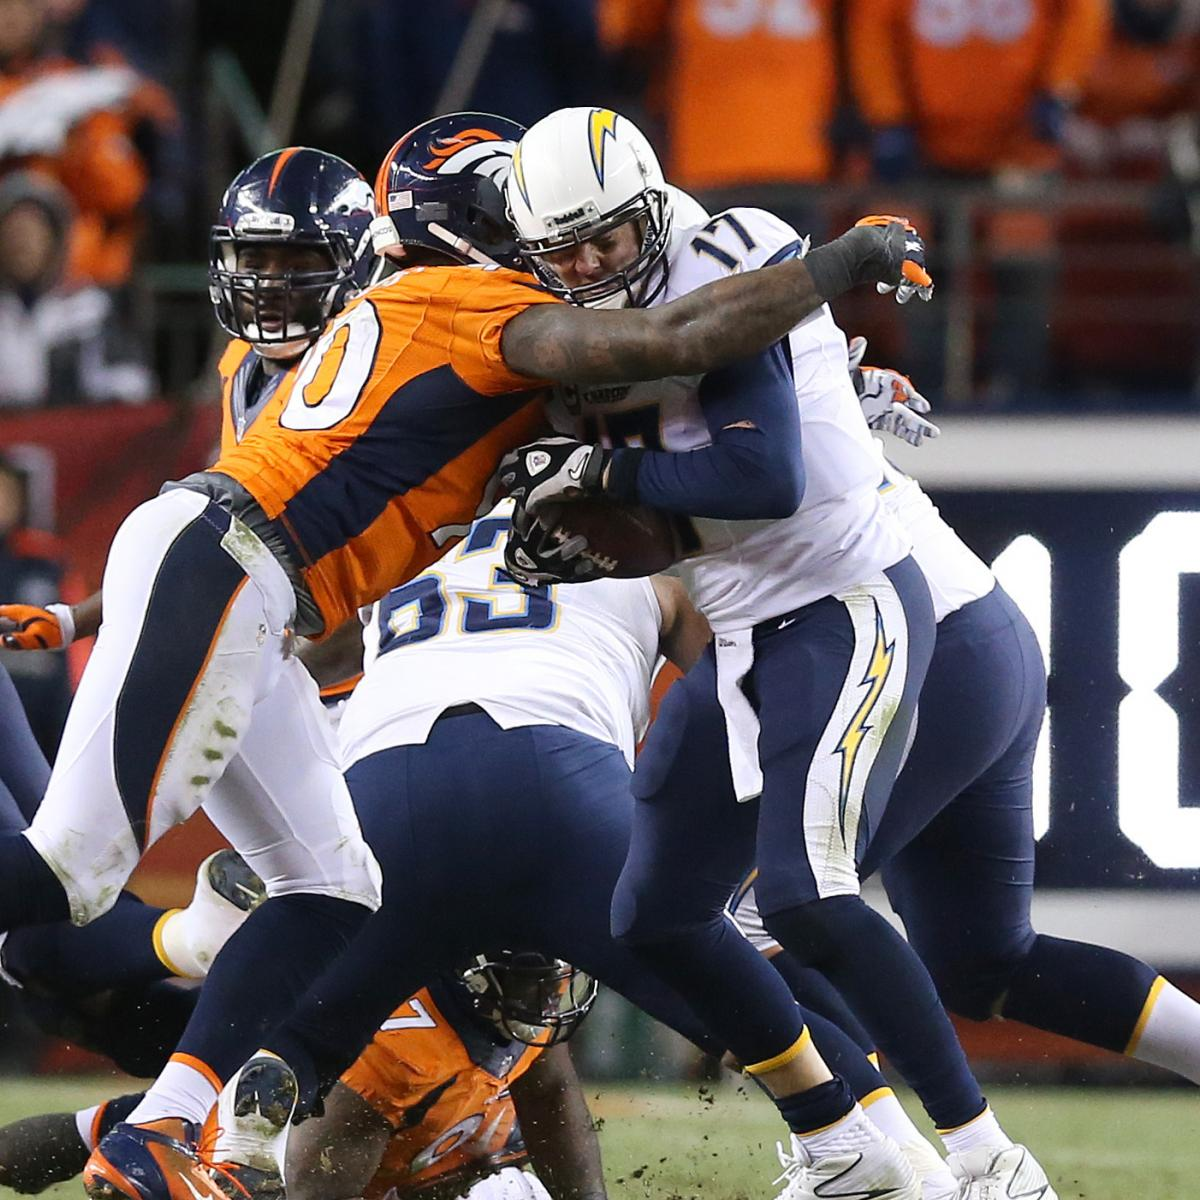 San Diego Chargers At Denver Broncos: San Diego Chargers' Positional Grades Vs. Denver Broncos